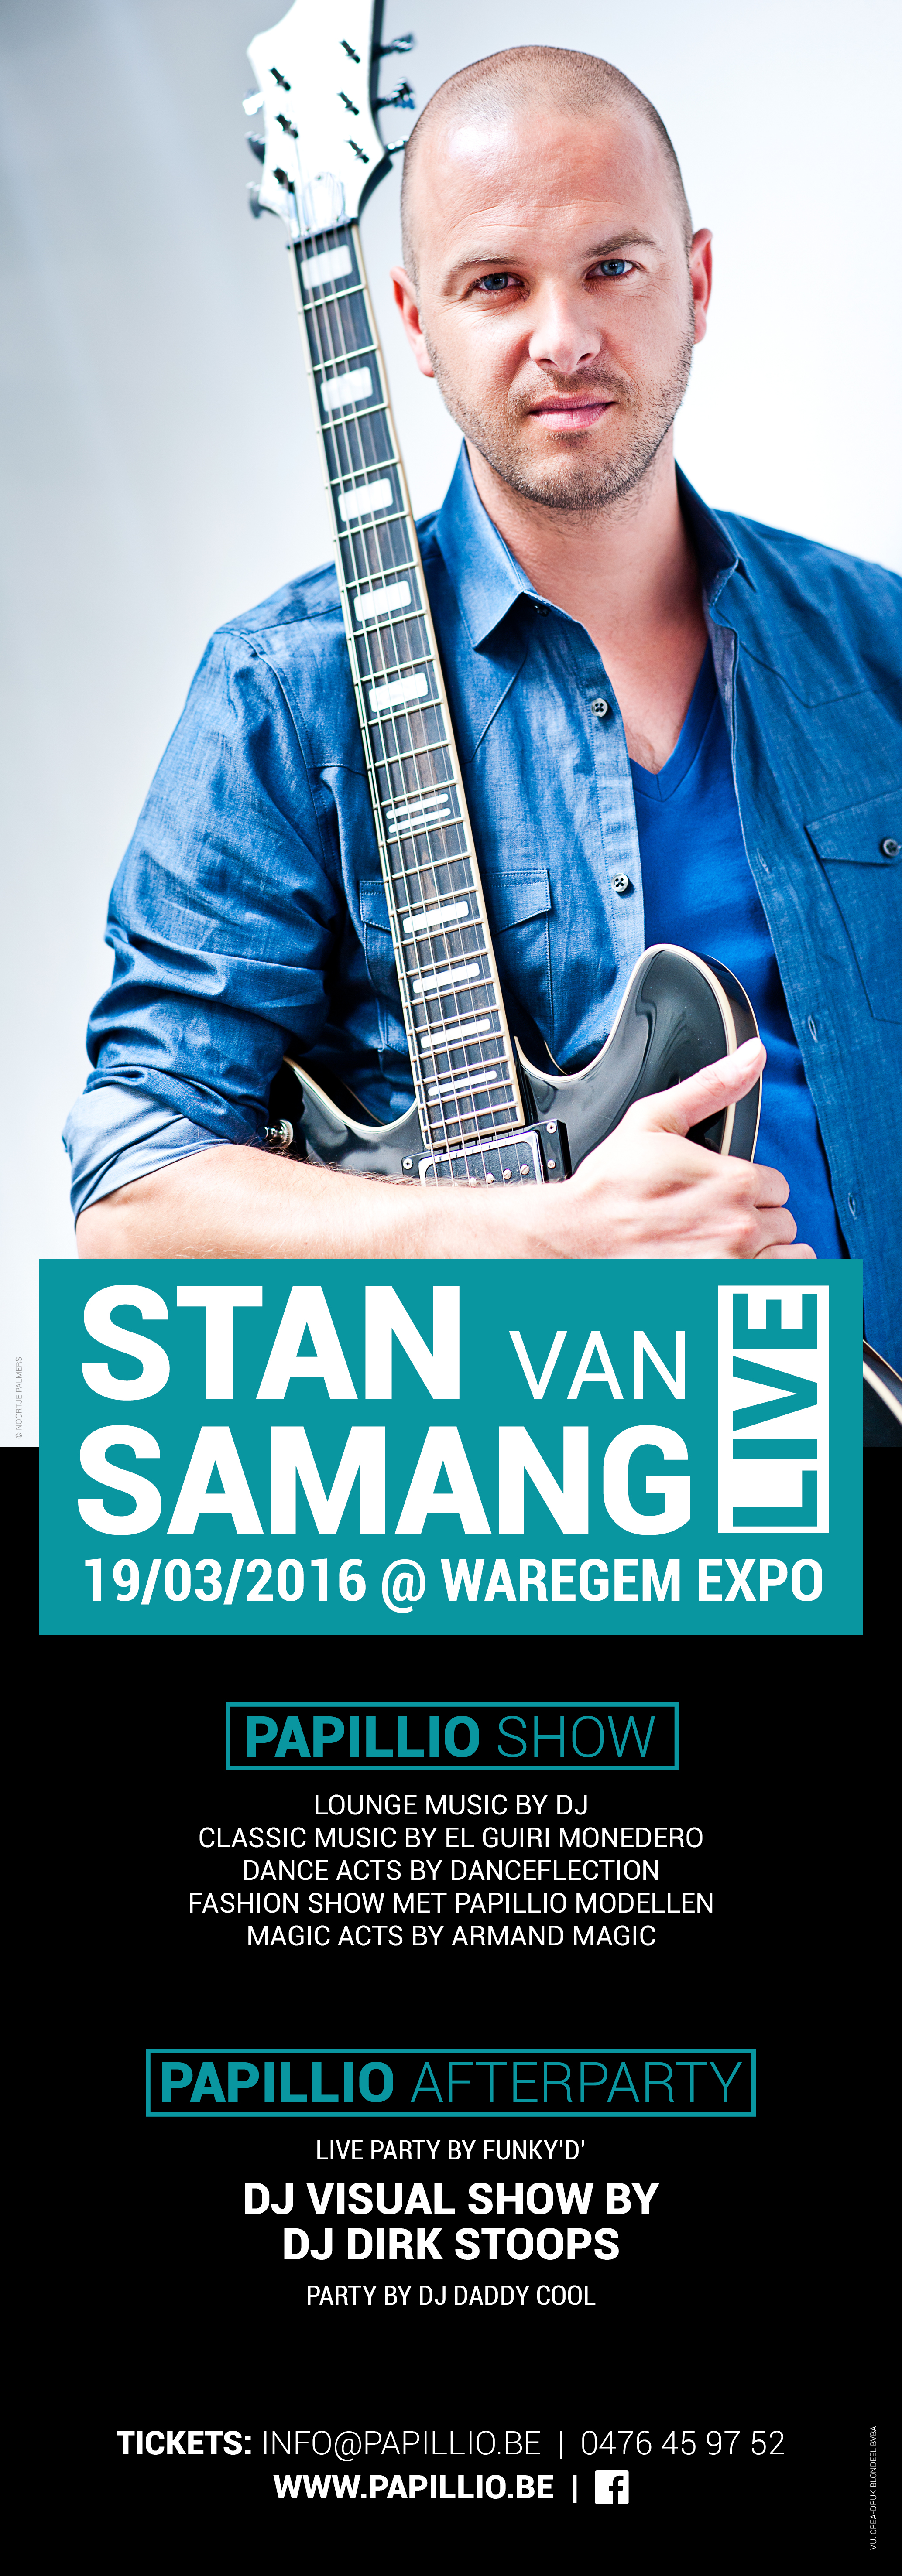 Stan van Samang Live + Papillio show + Papillio afterparty + DJ visual show by DJ Dirk Stoops